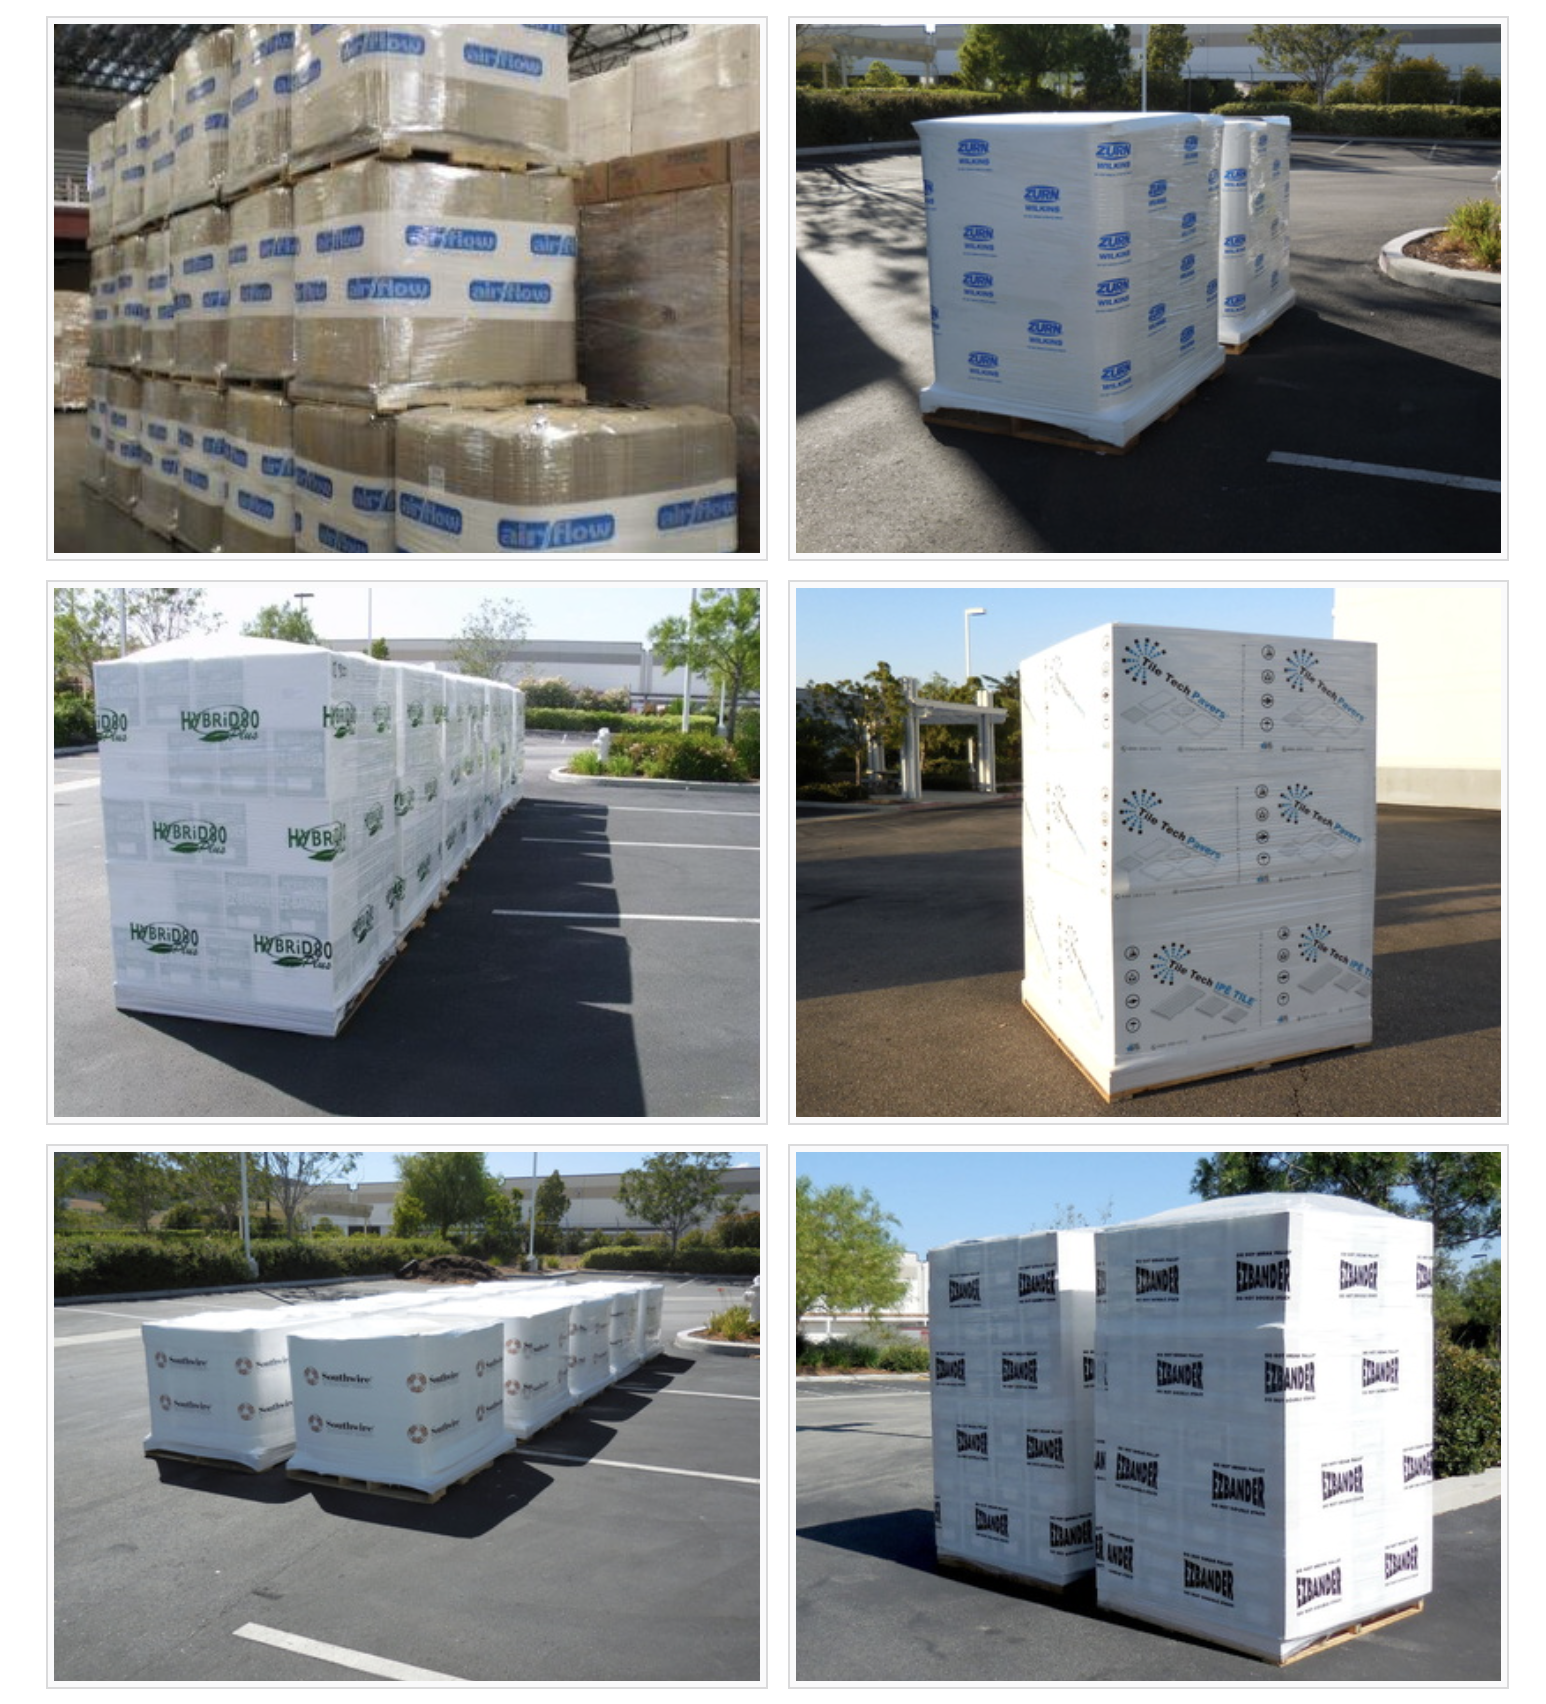 Printed pallet wrap stretch film printing with company name